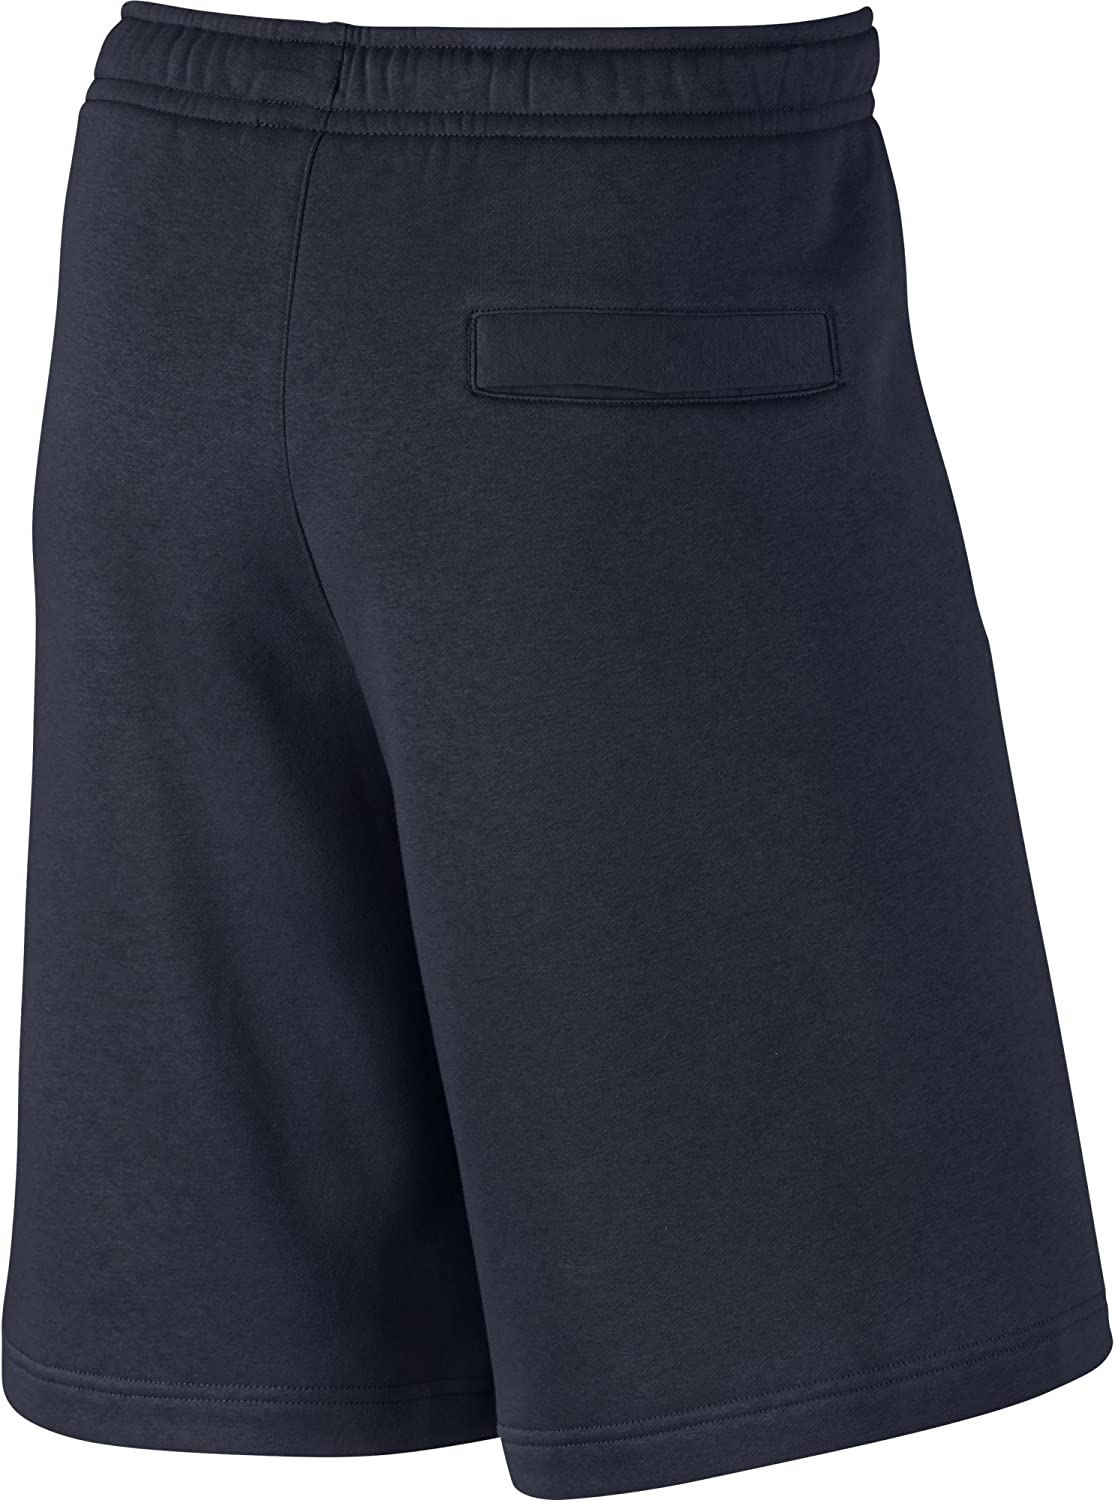 Mens Nike Club Fleece Short